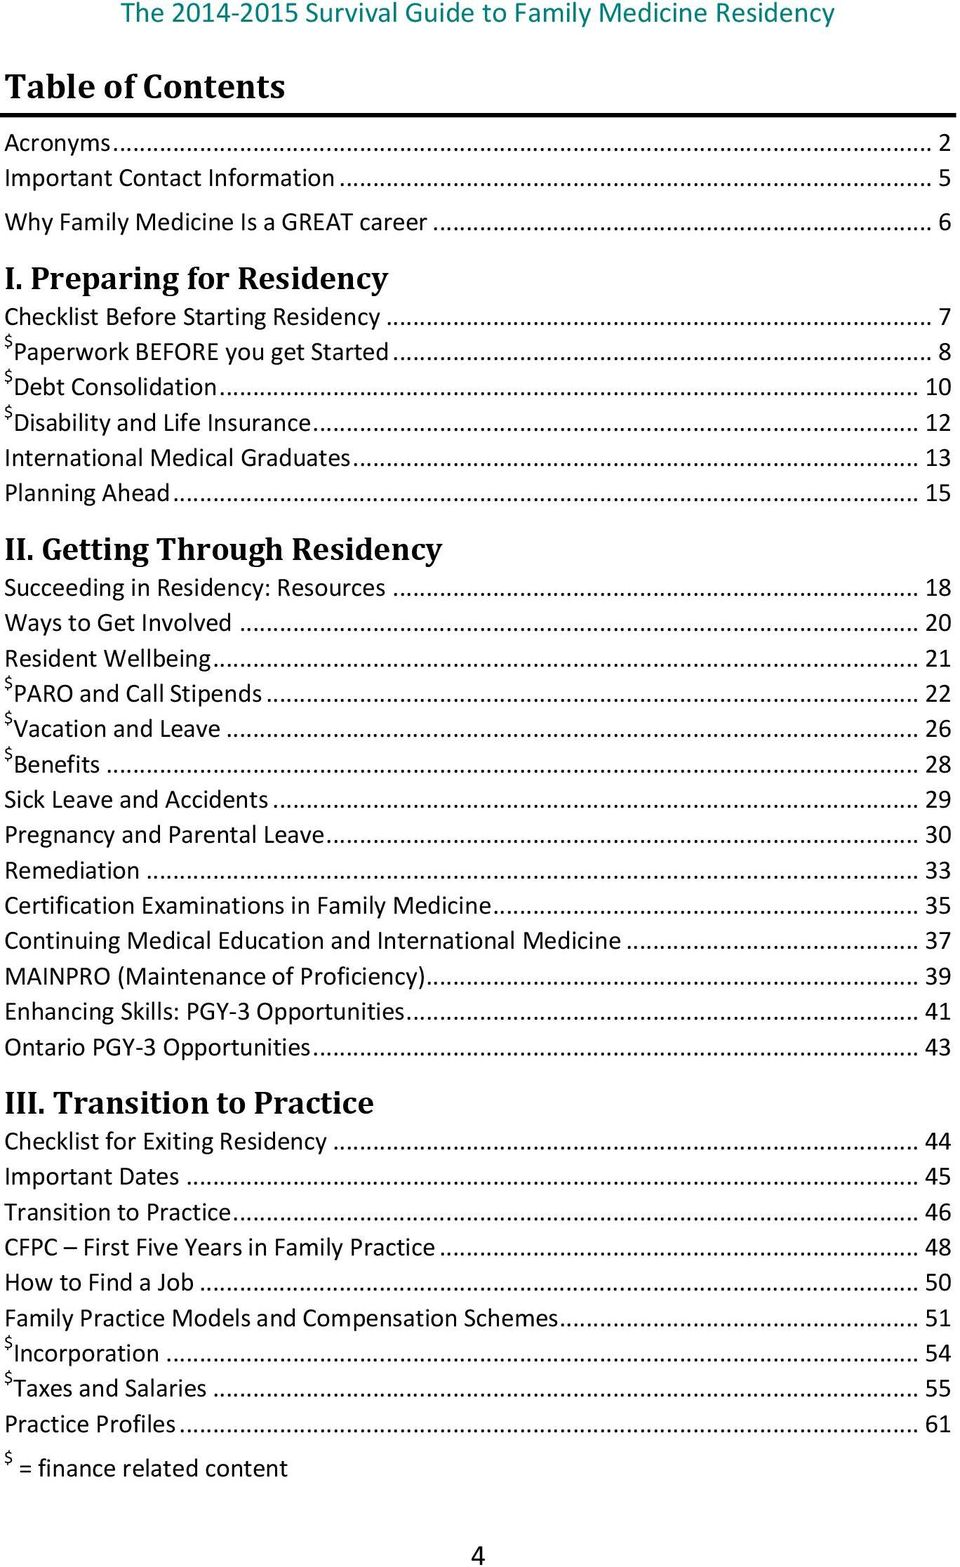 Getting Through Residency Succeeding in Residency: Resources... 18 Ways to Get Involved... 20 Resident Wellbeing... 21 $ PARO and Call Stipends... 22 $ Vacation and Leave... 26 $ Benefits.